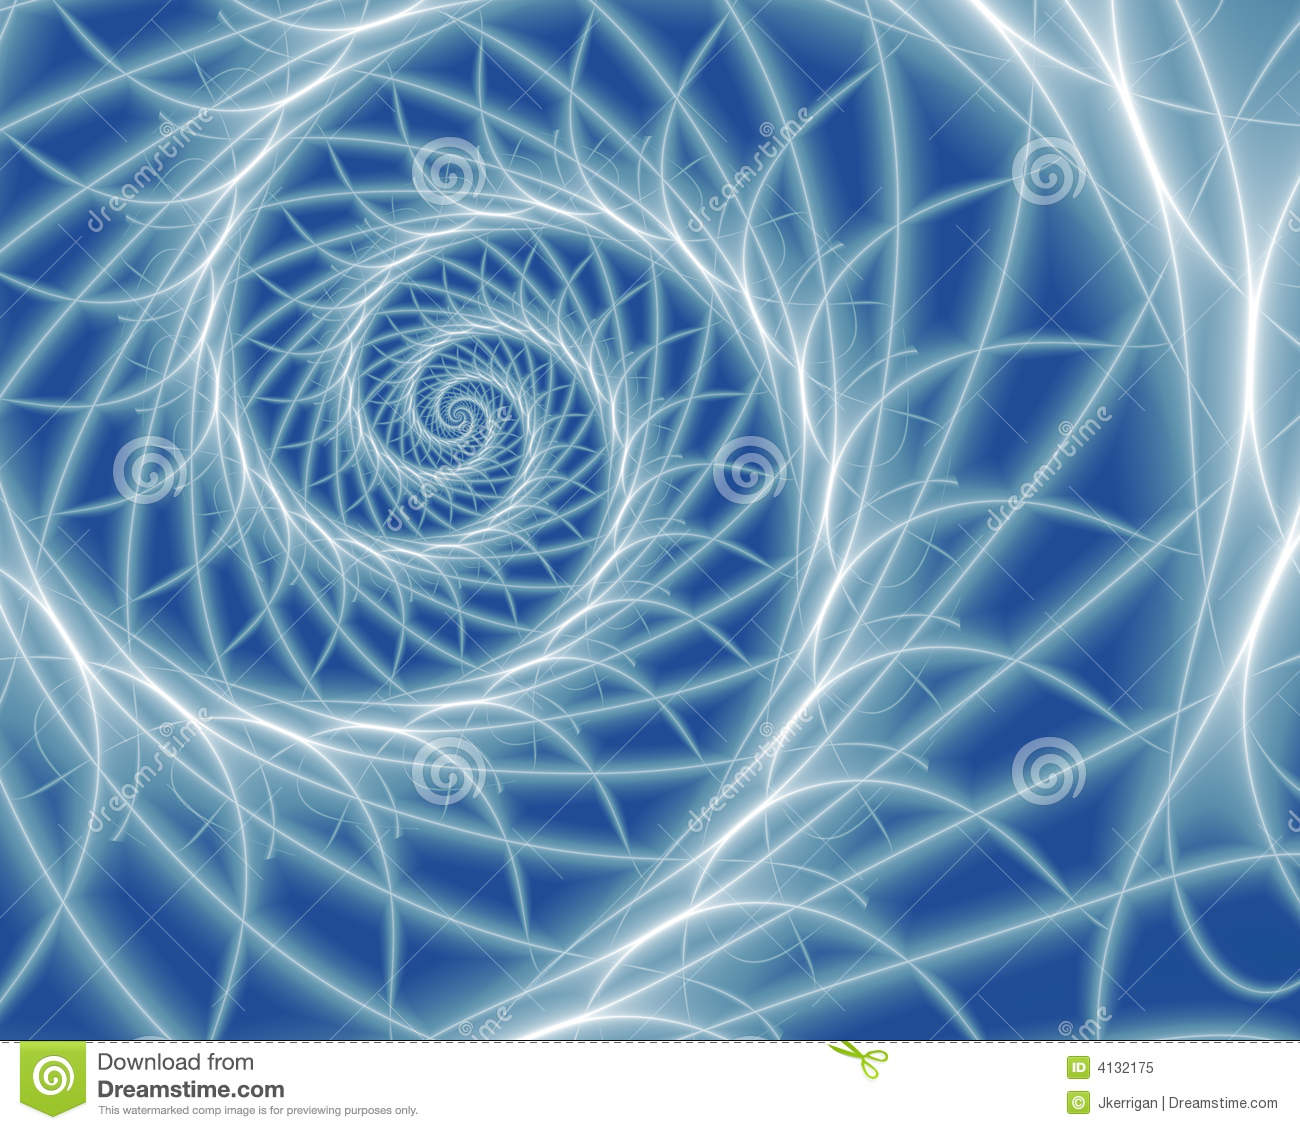 Spiral of Filaments